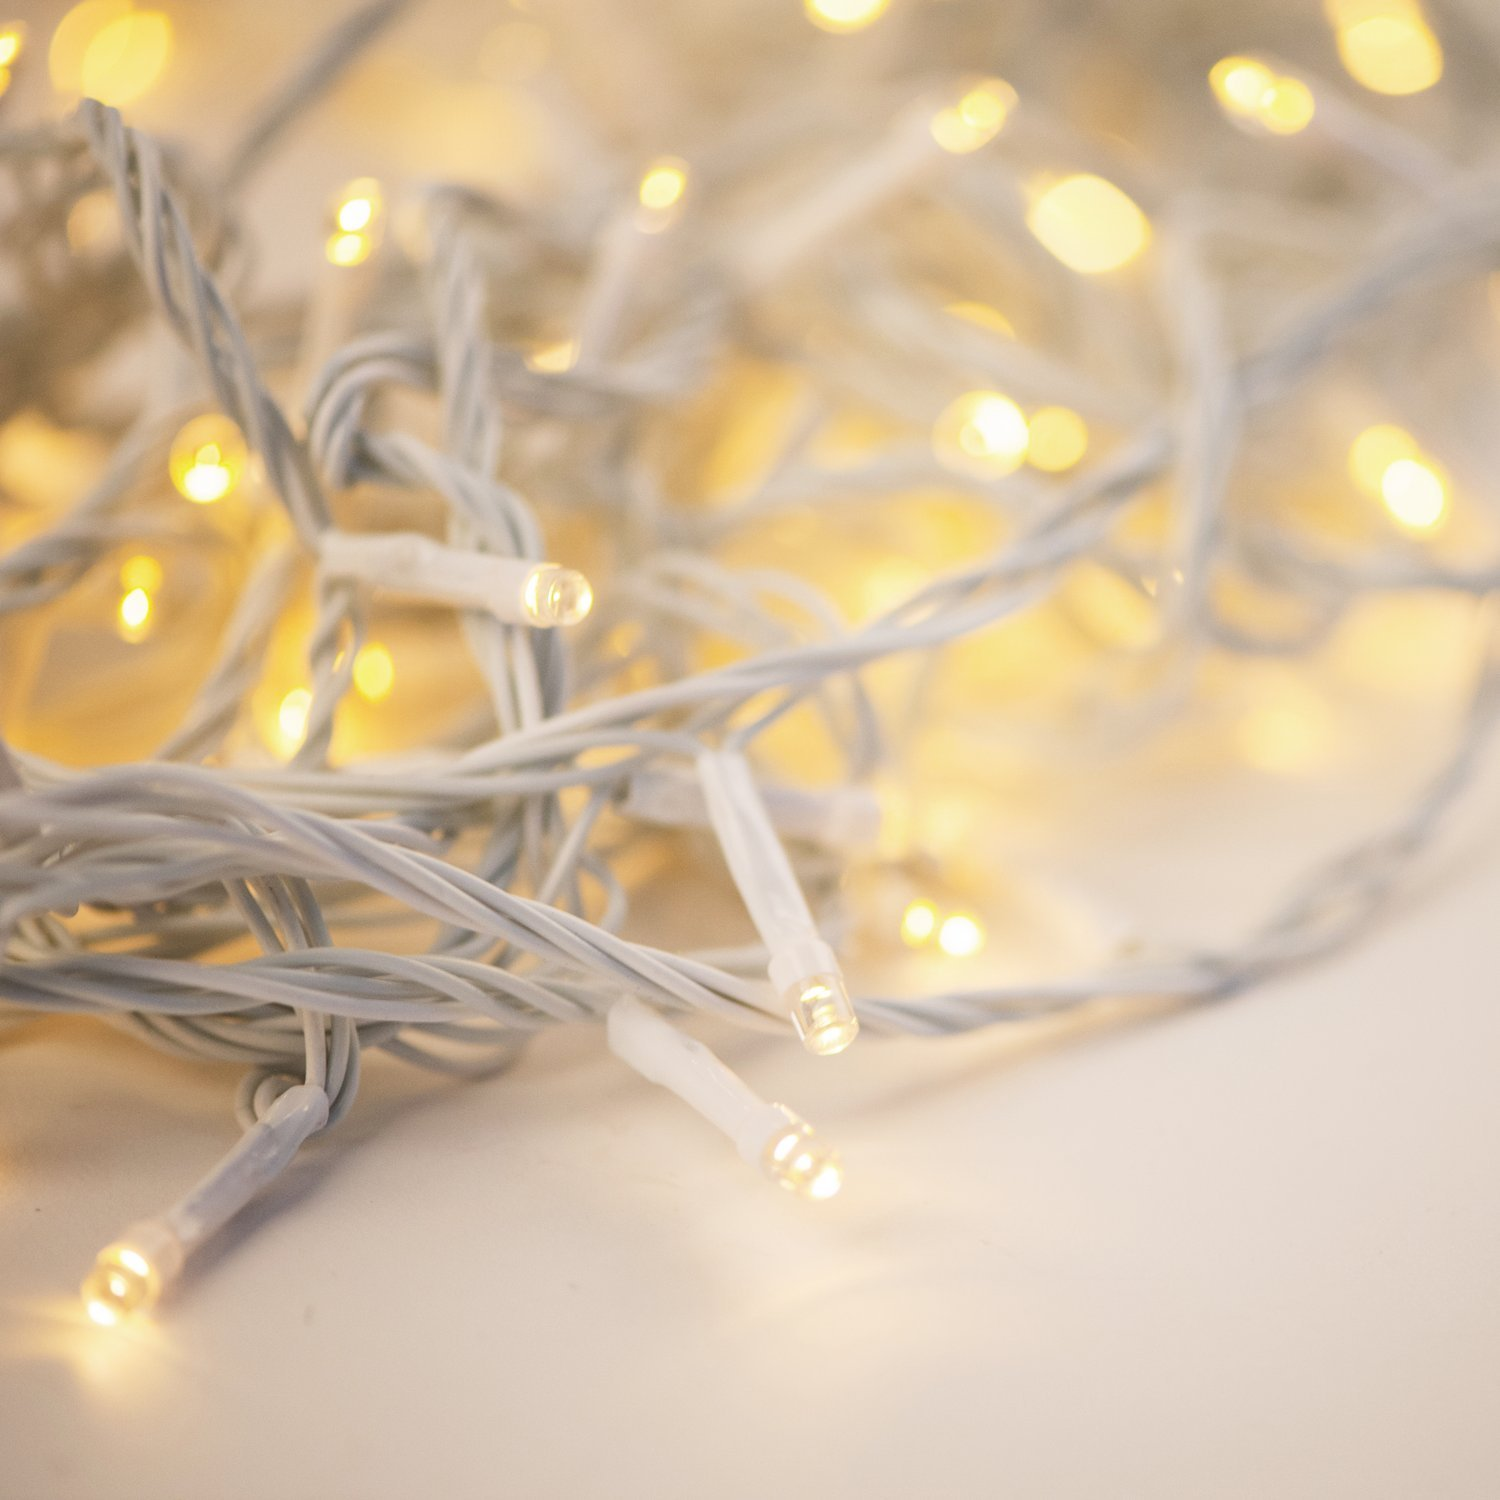 White String Lights with 200 LEDs, 66 ft, Warm White Glow, Indoor/Outdoor Use, 8 Light Functions, Battery-Operated, Connectable, UL Listed - For Home, Patio and Party Decorations